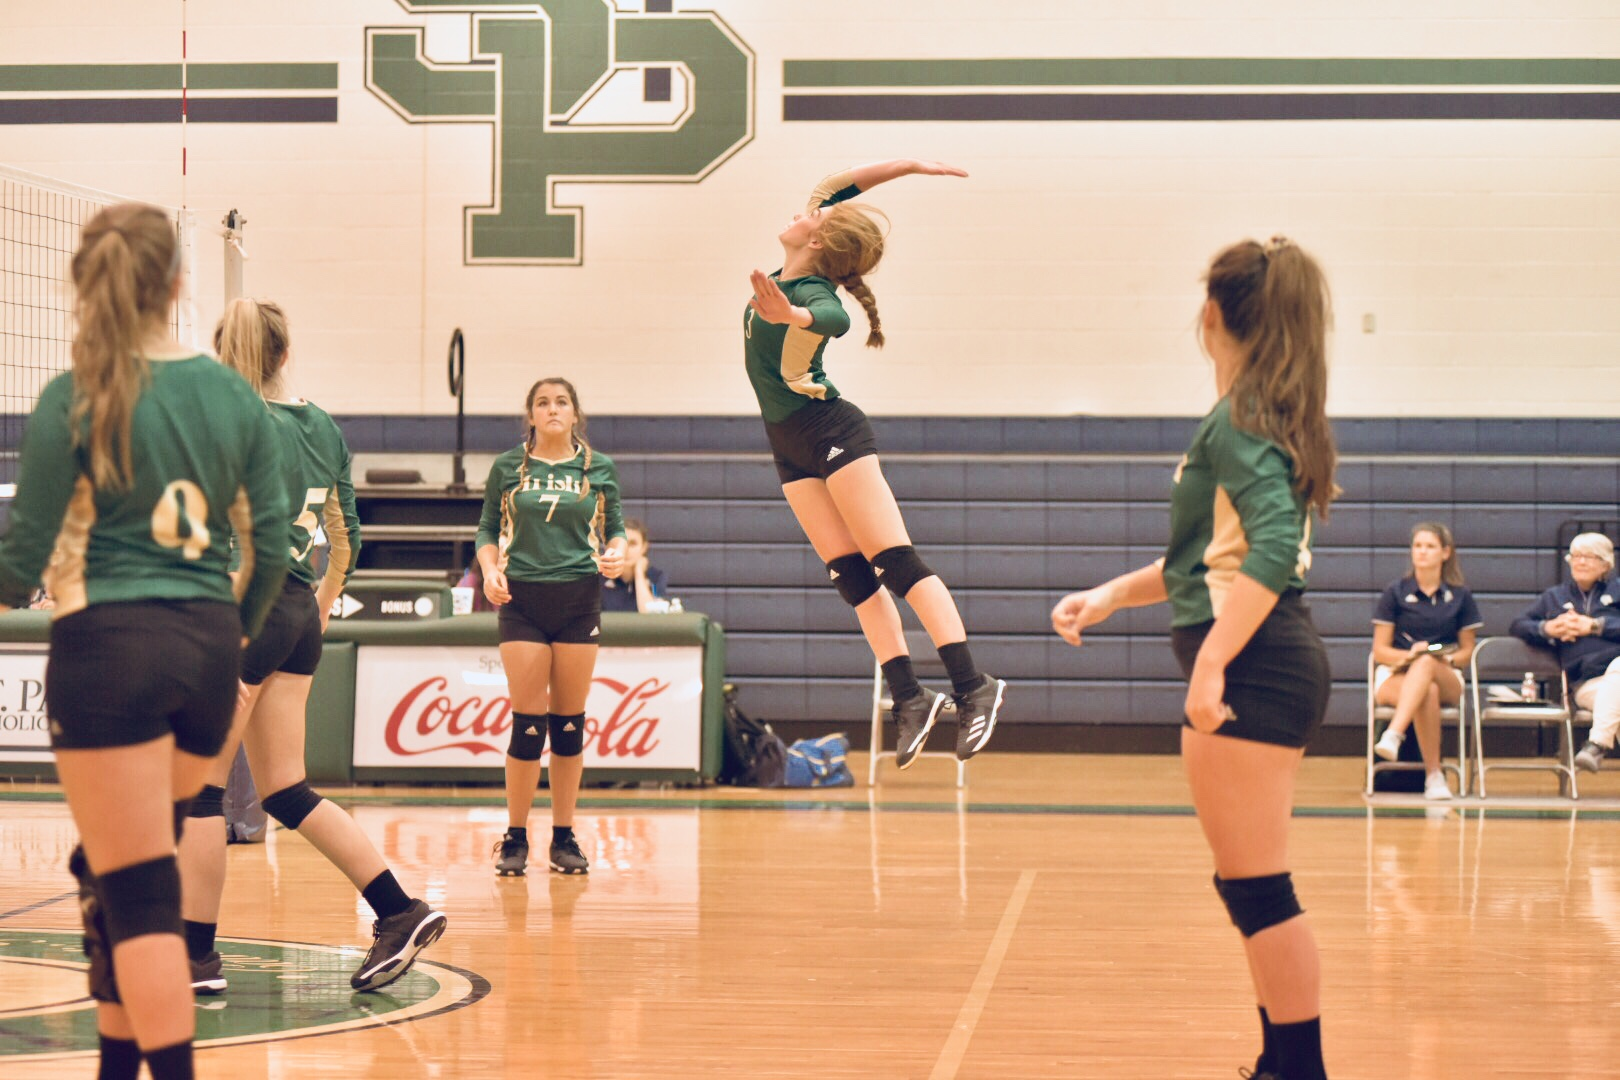 First home volleyball game: Lady Irish vs. West Harrison